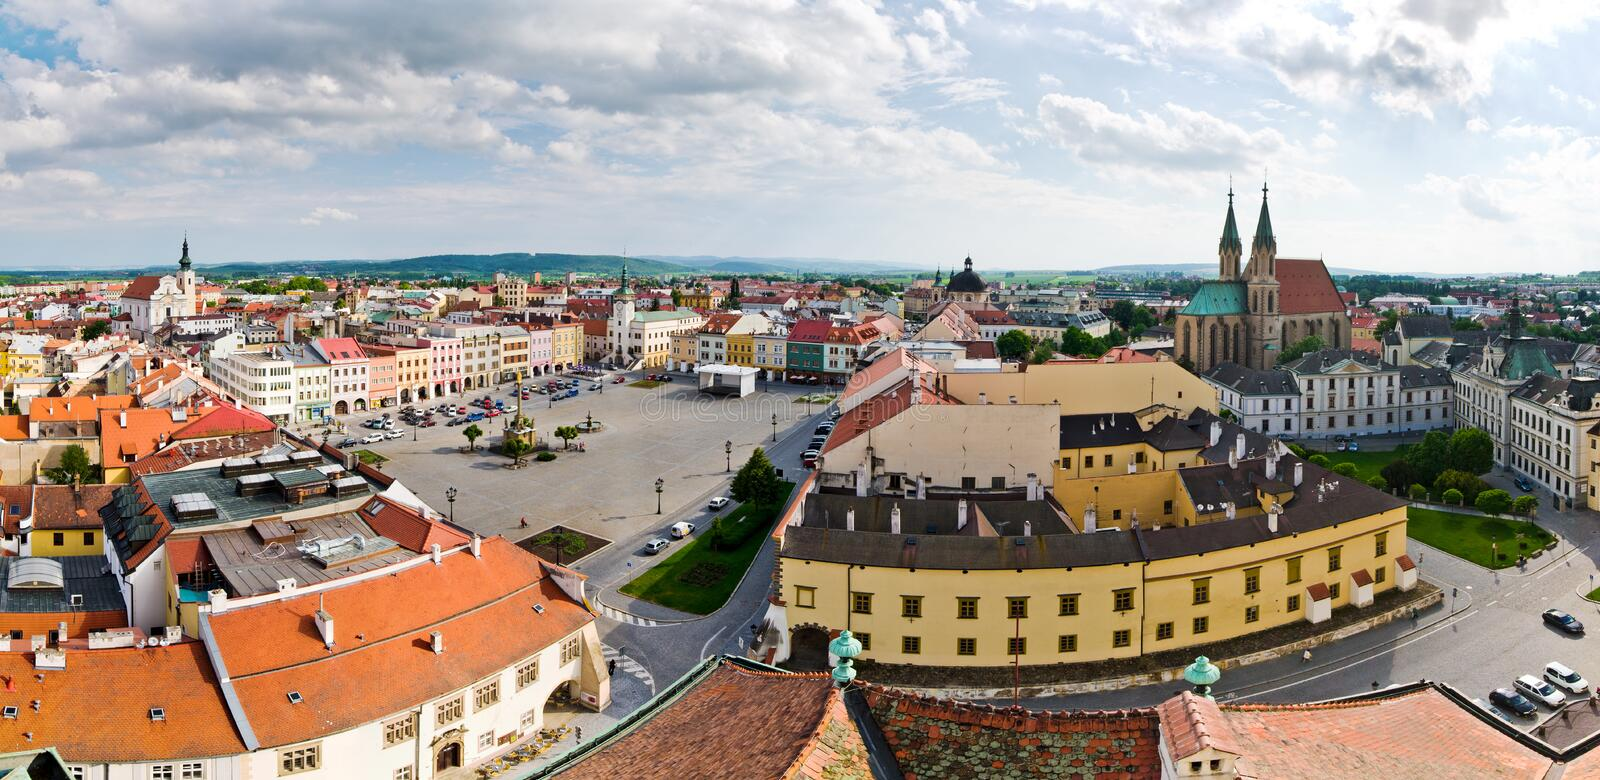 Town square in Kromeriz, Czech Republic. Town square in Kromeriz - Czech Republic royalty free stock images